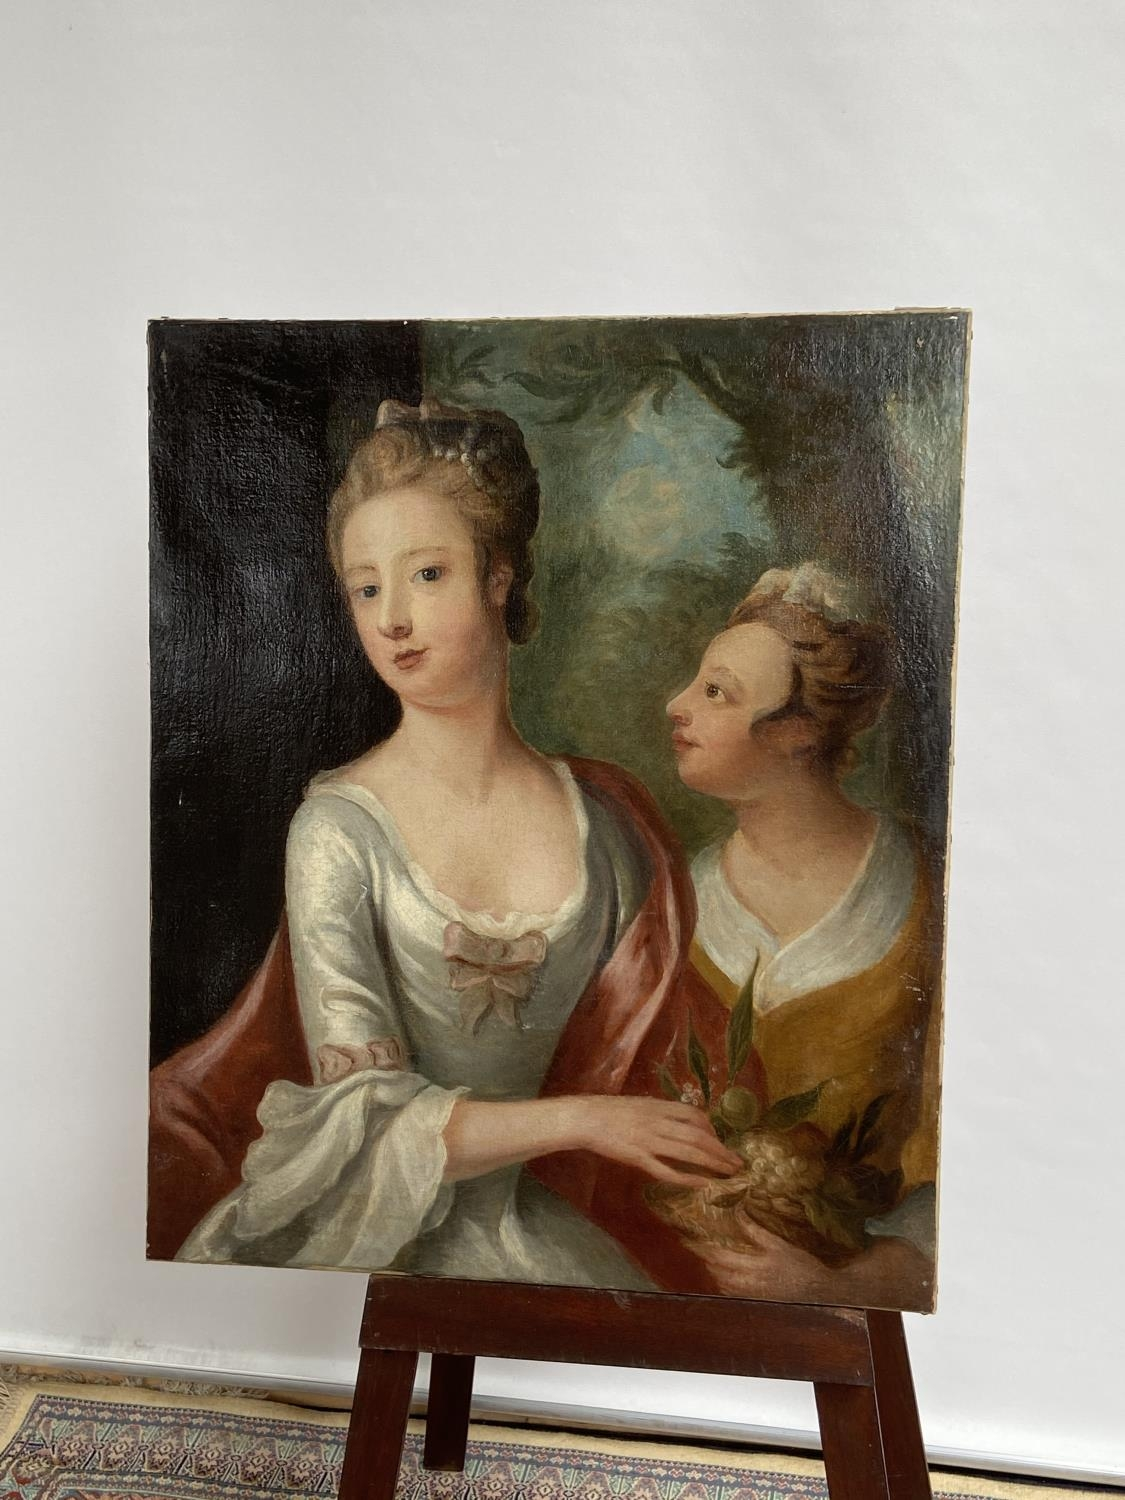 An 18th/19th century oil painting on canvas depicting two ladies posing [74x61cm] - Image 6 of 8